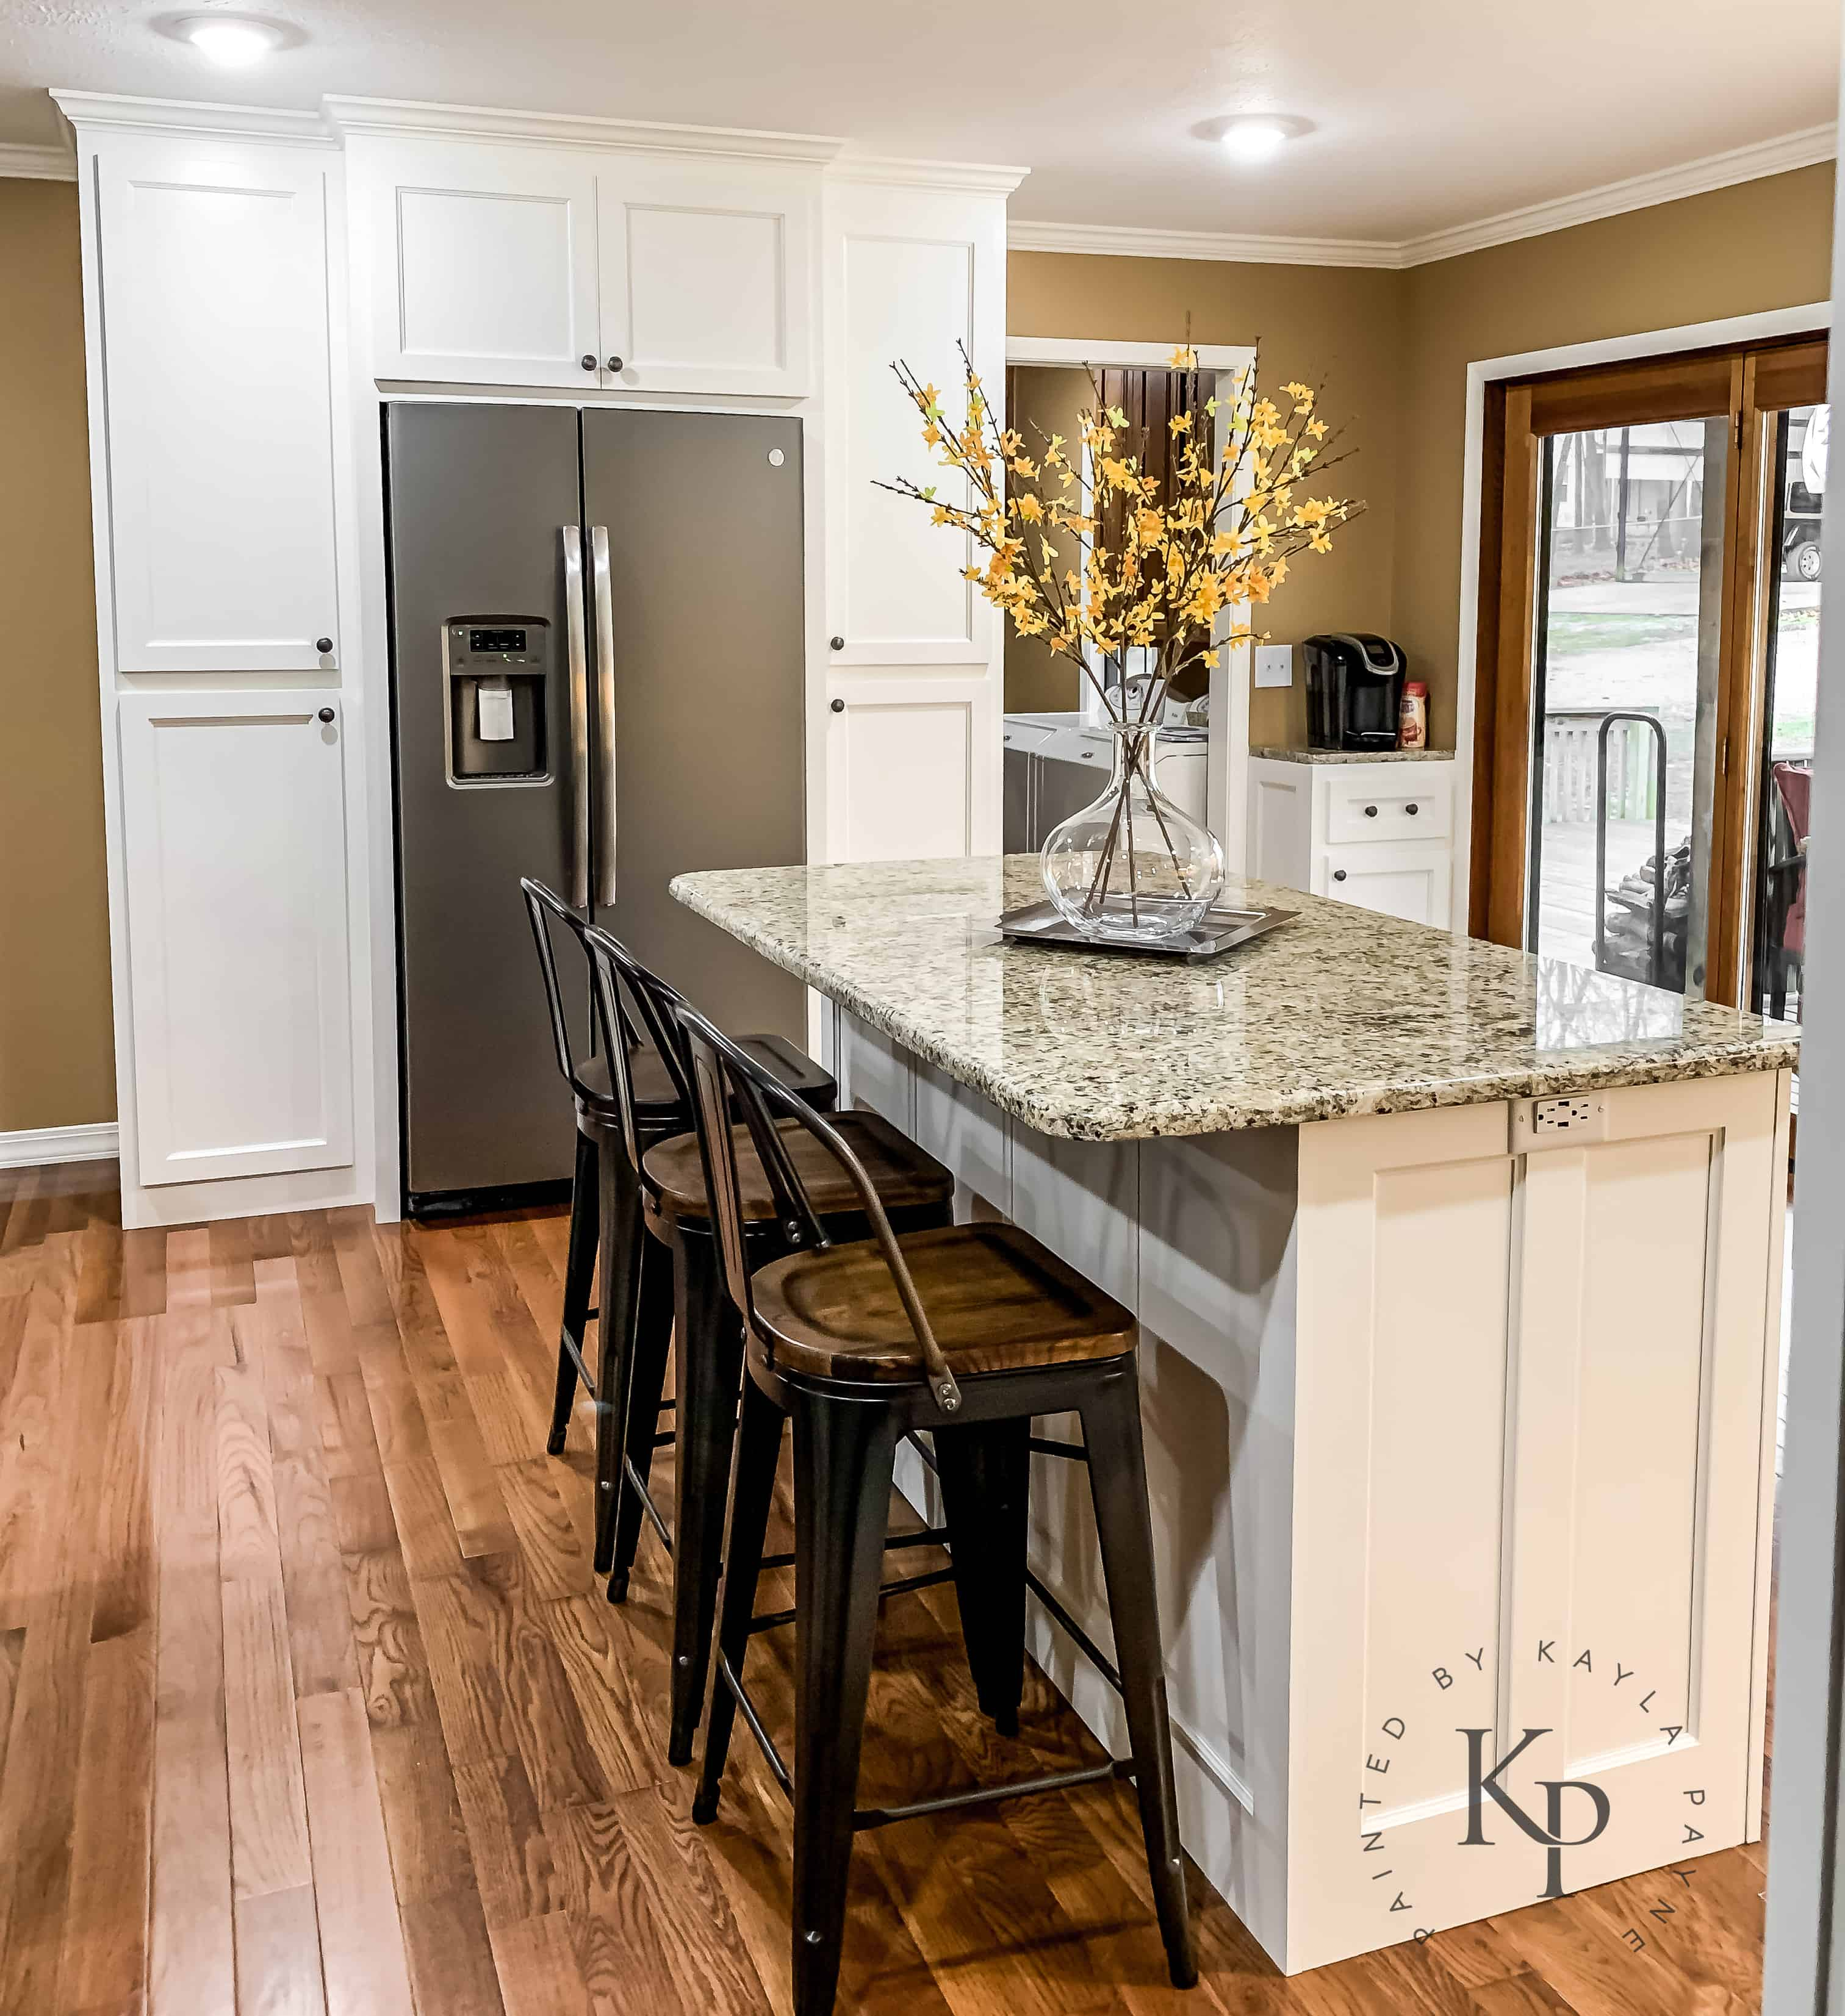 What White Paint For Kitchen Cabinets: Kitchen Cabinets In Sherwin Williams Dover White